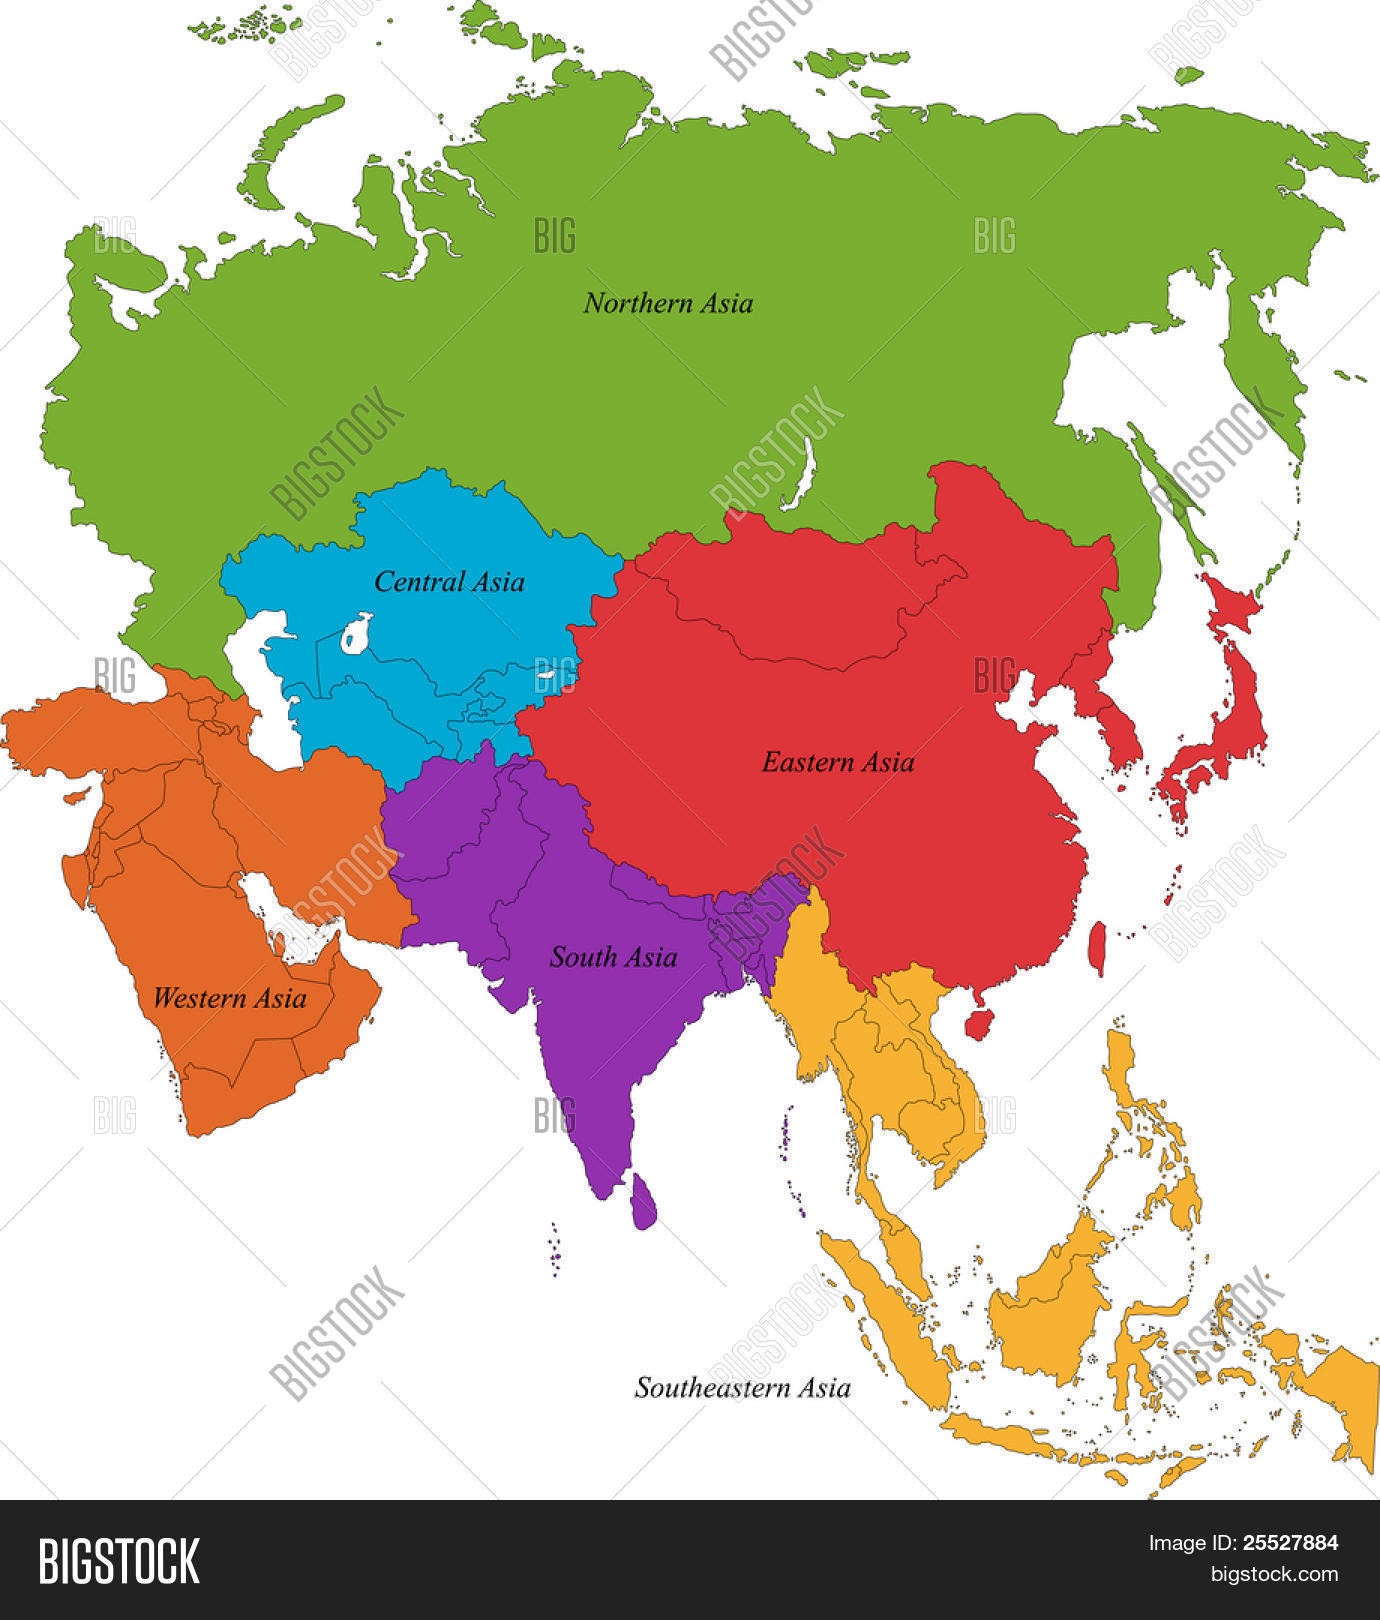 Map Of Asia With 5 Regions.Map Of Asia With 5 Regions Twitterleesclub